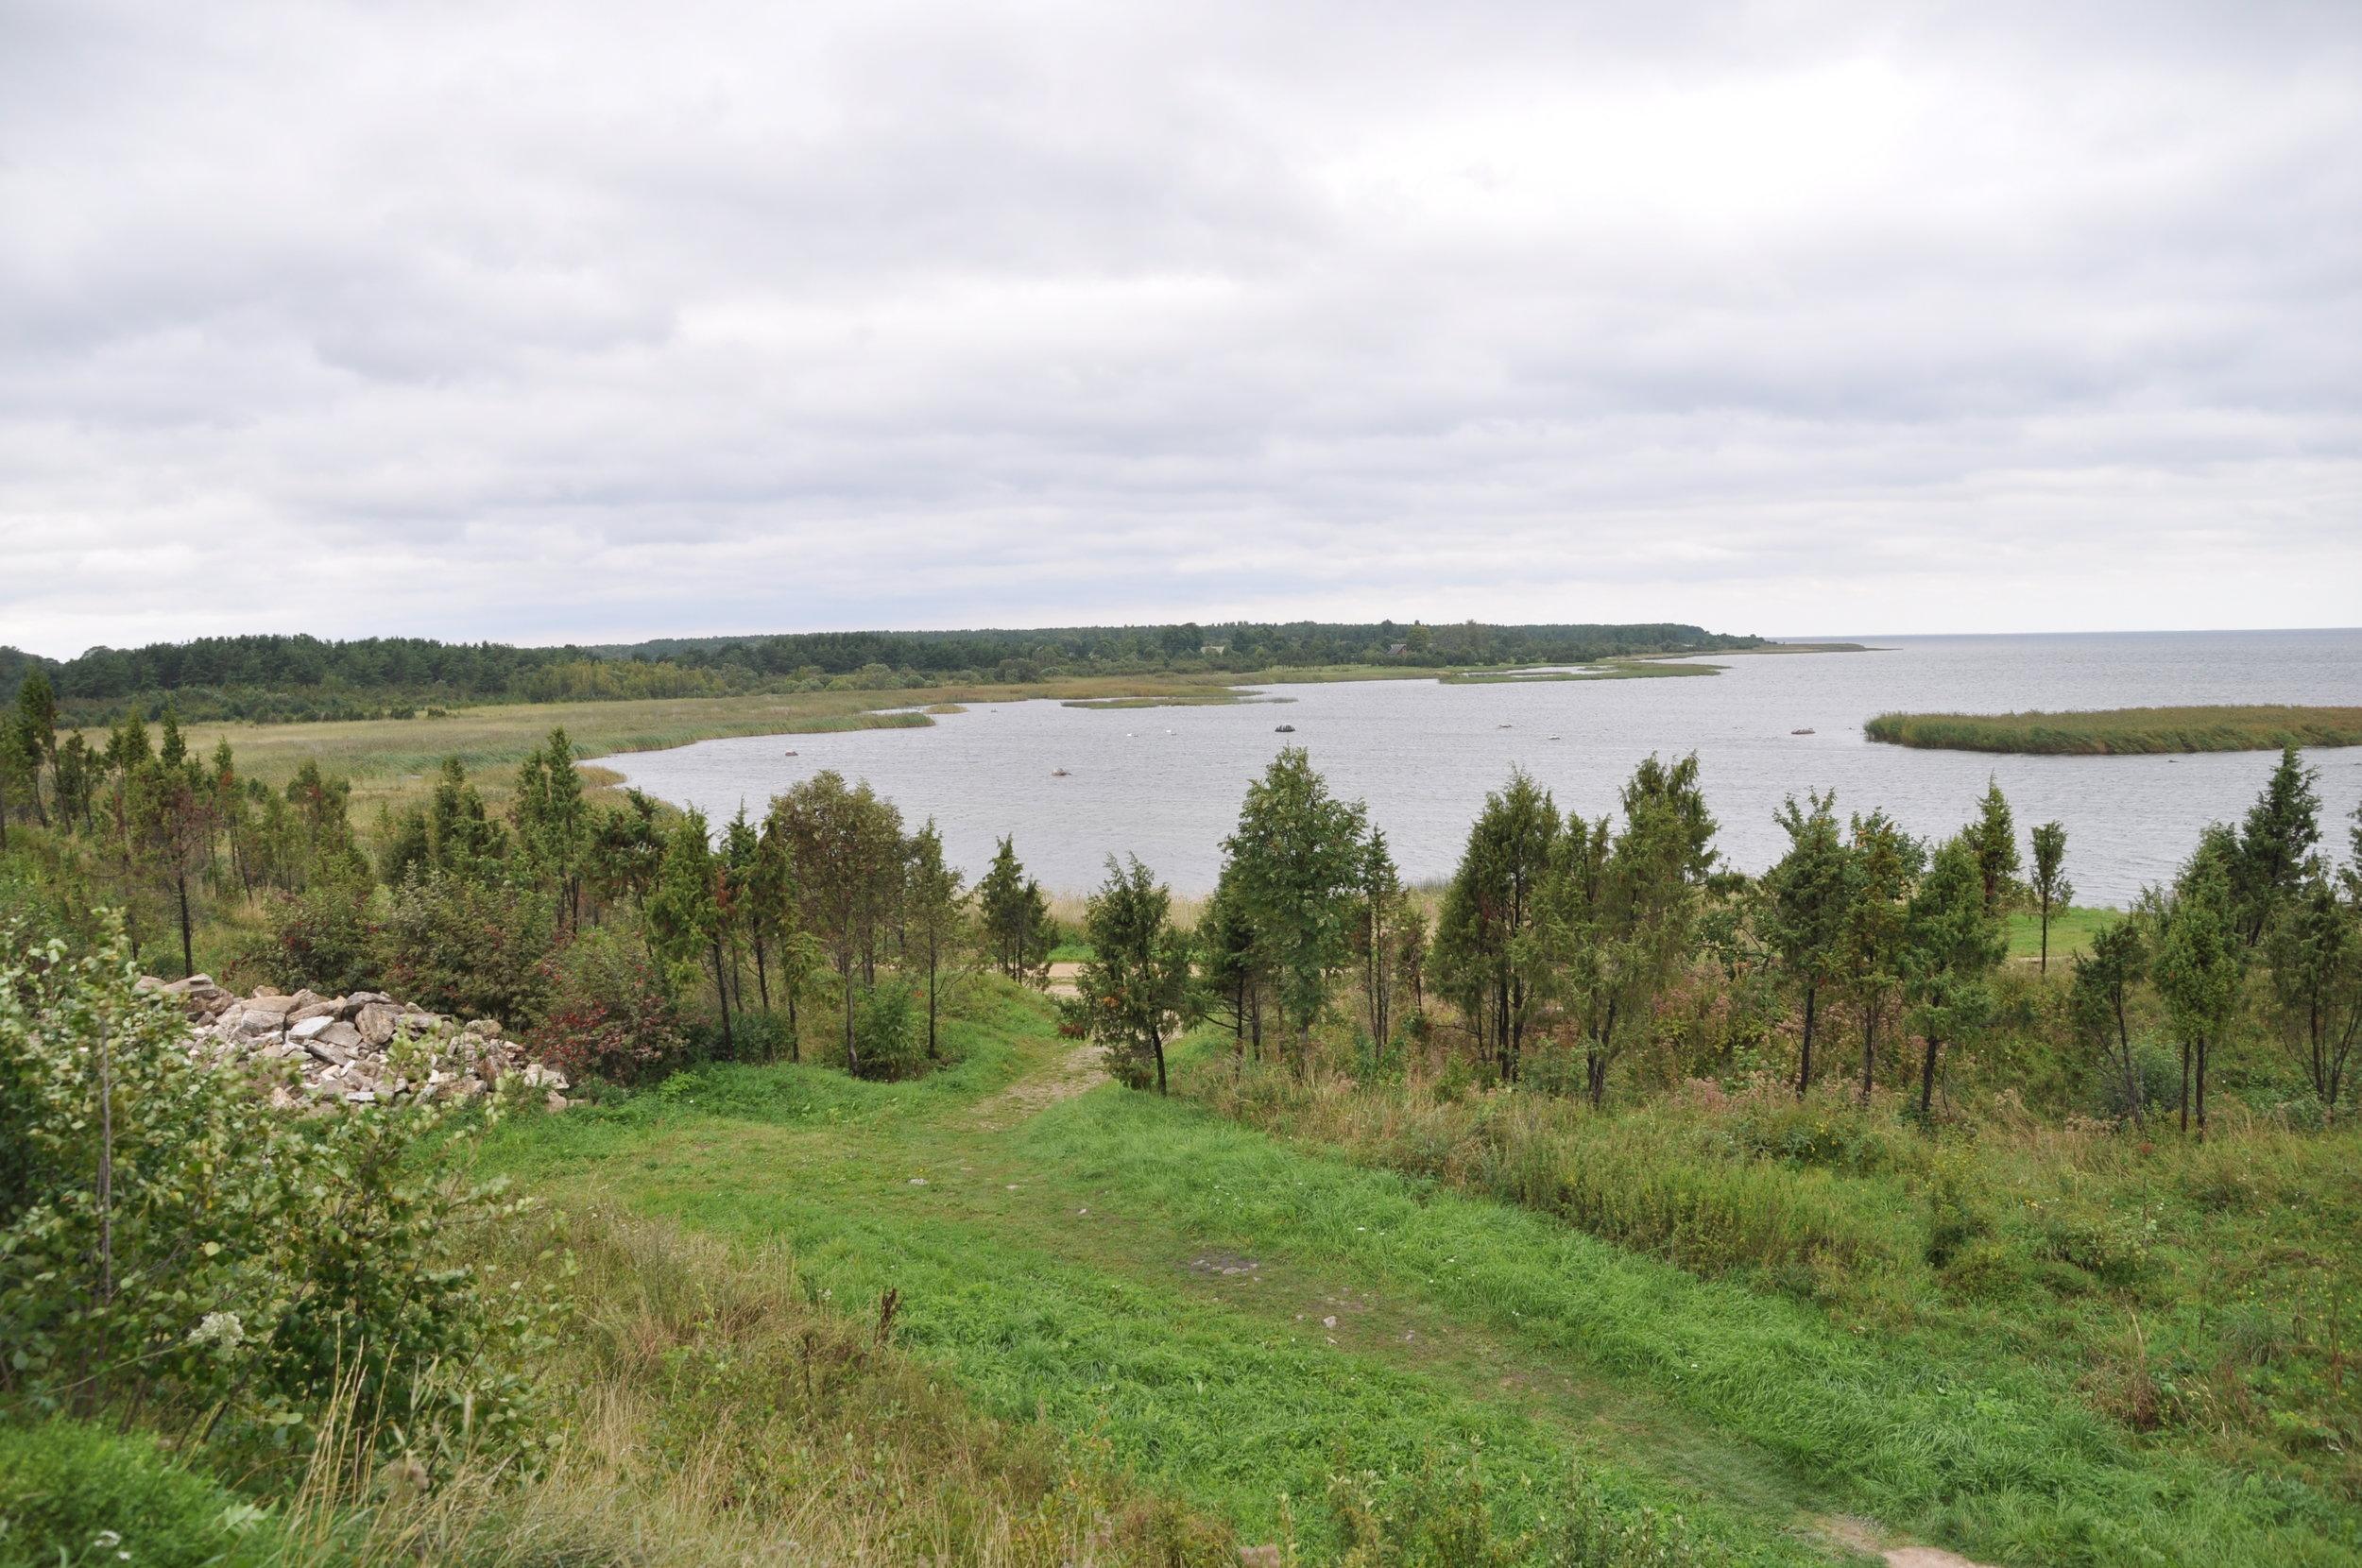 The view from Saaremaa's Maasi fortress. Photo: Meg Pier